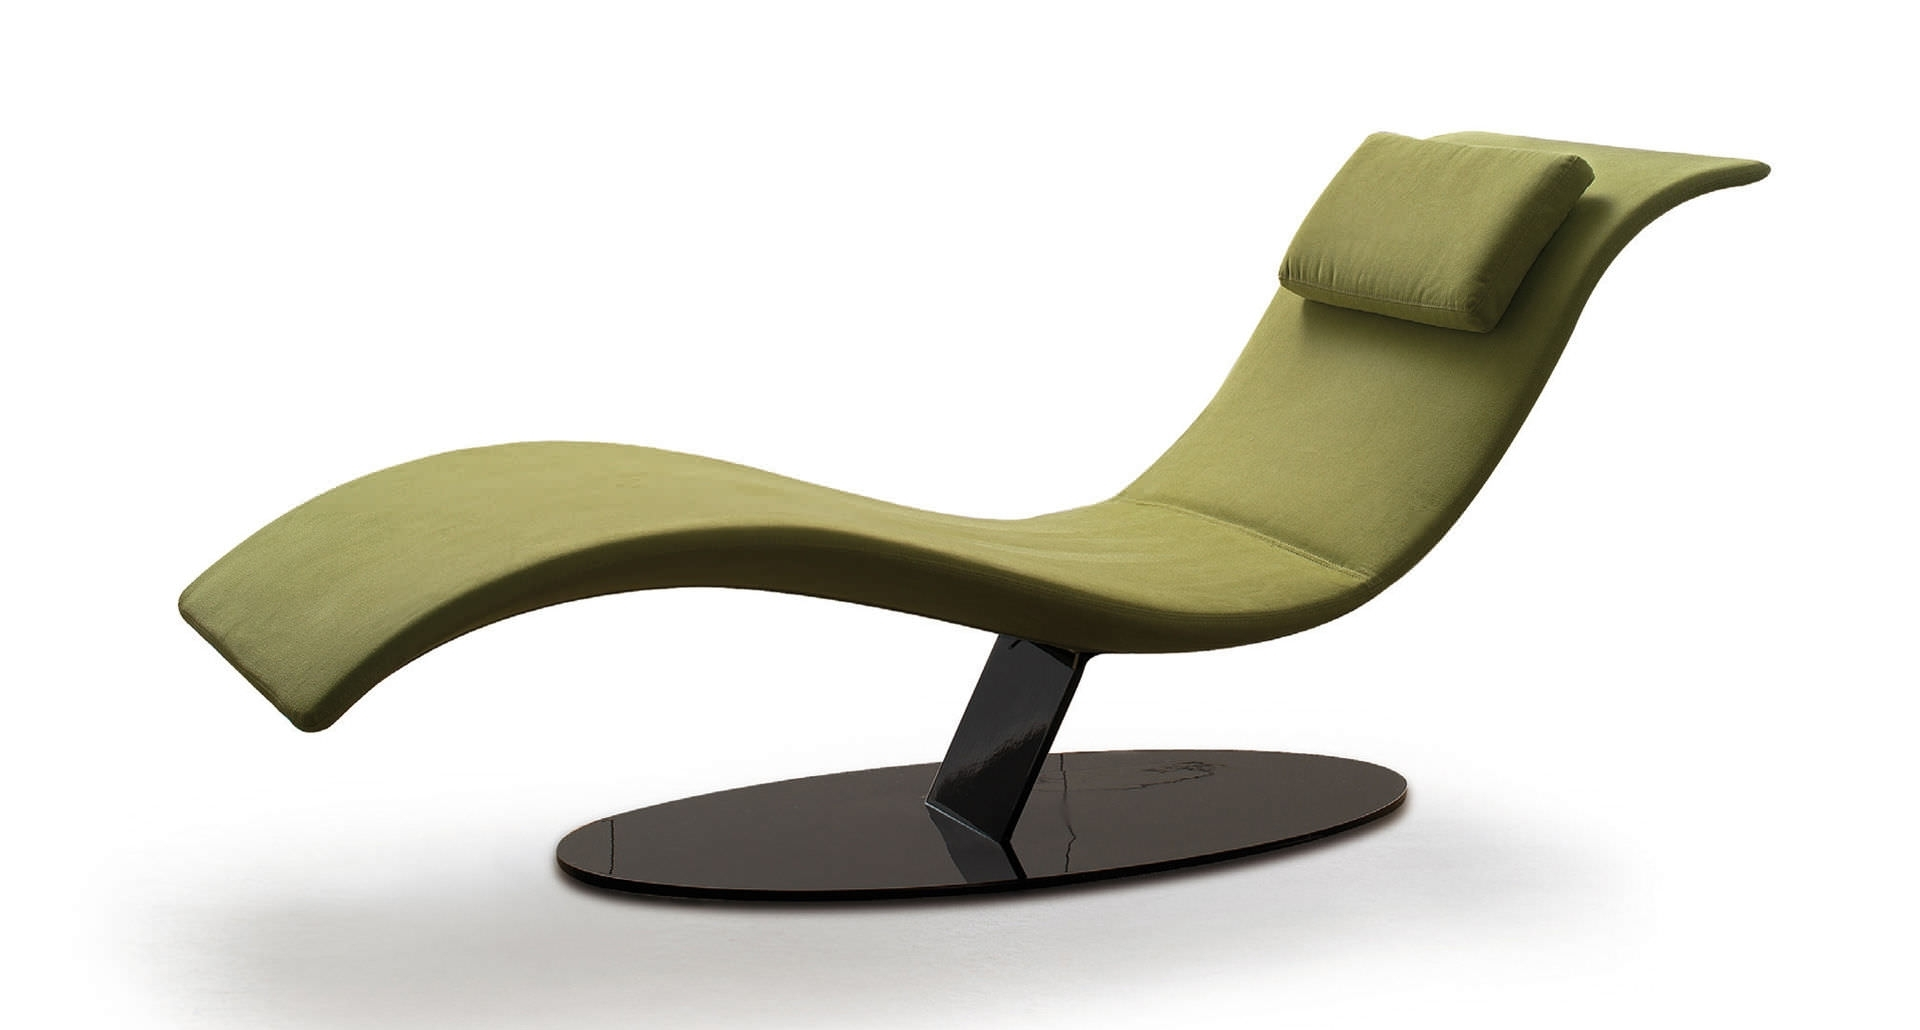 Green Chaise Lounge Chairs In Famous Fresh Contemporary Pool Chaise Lounges # (View 11 of 15)